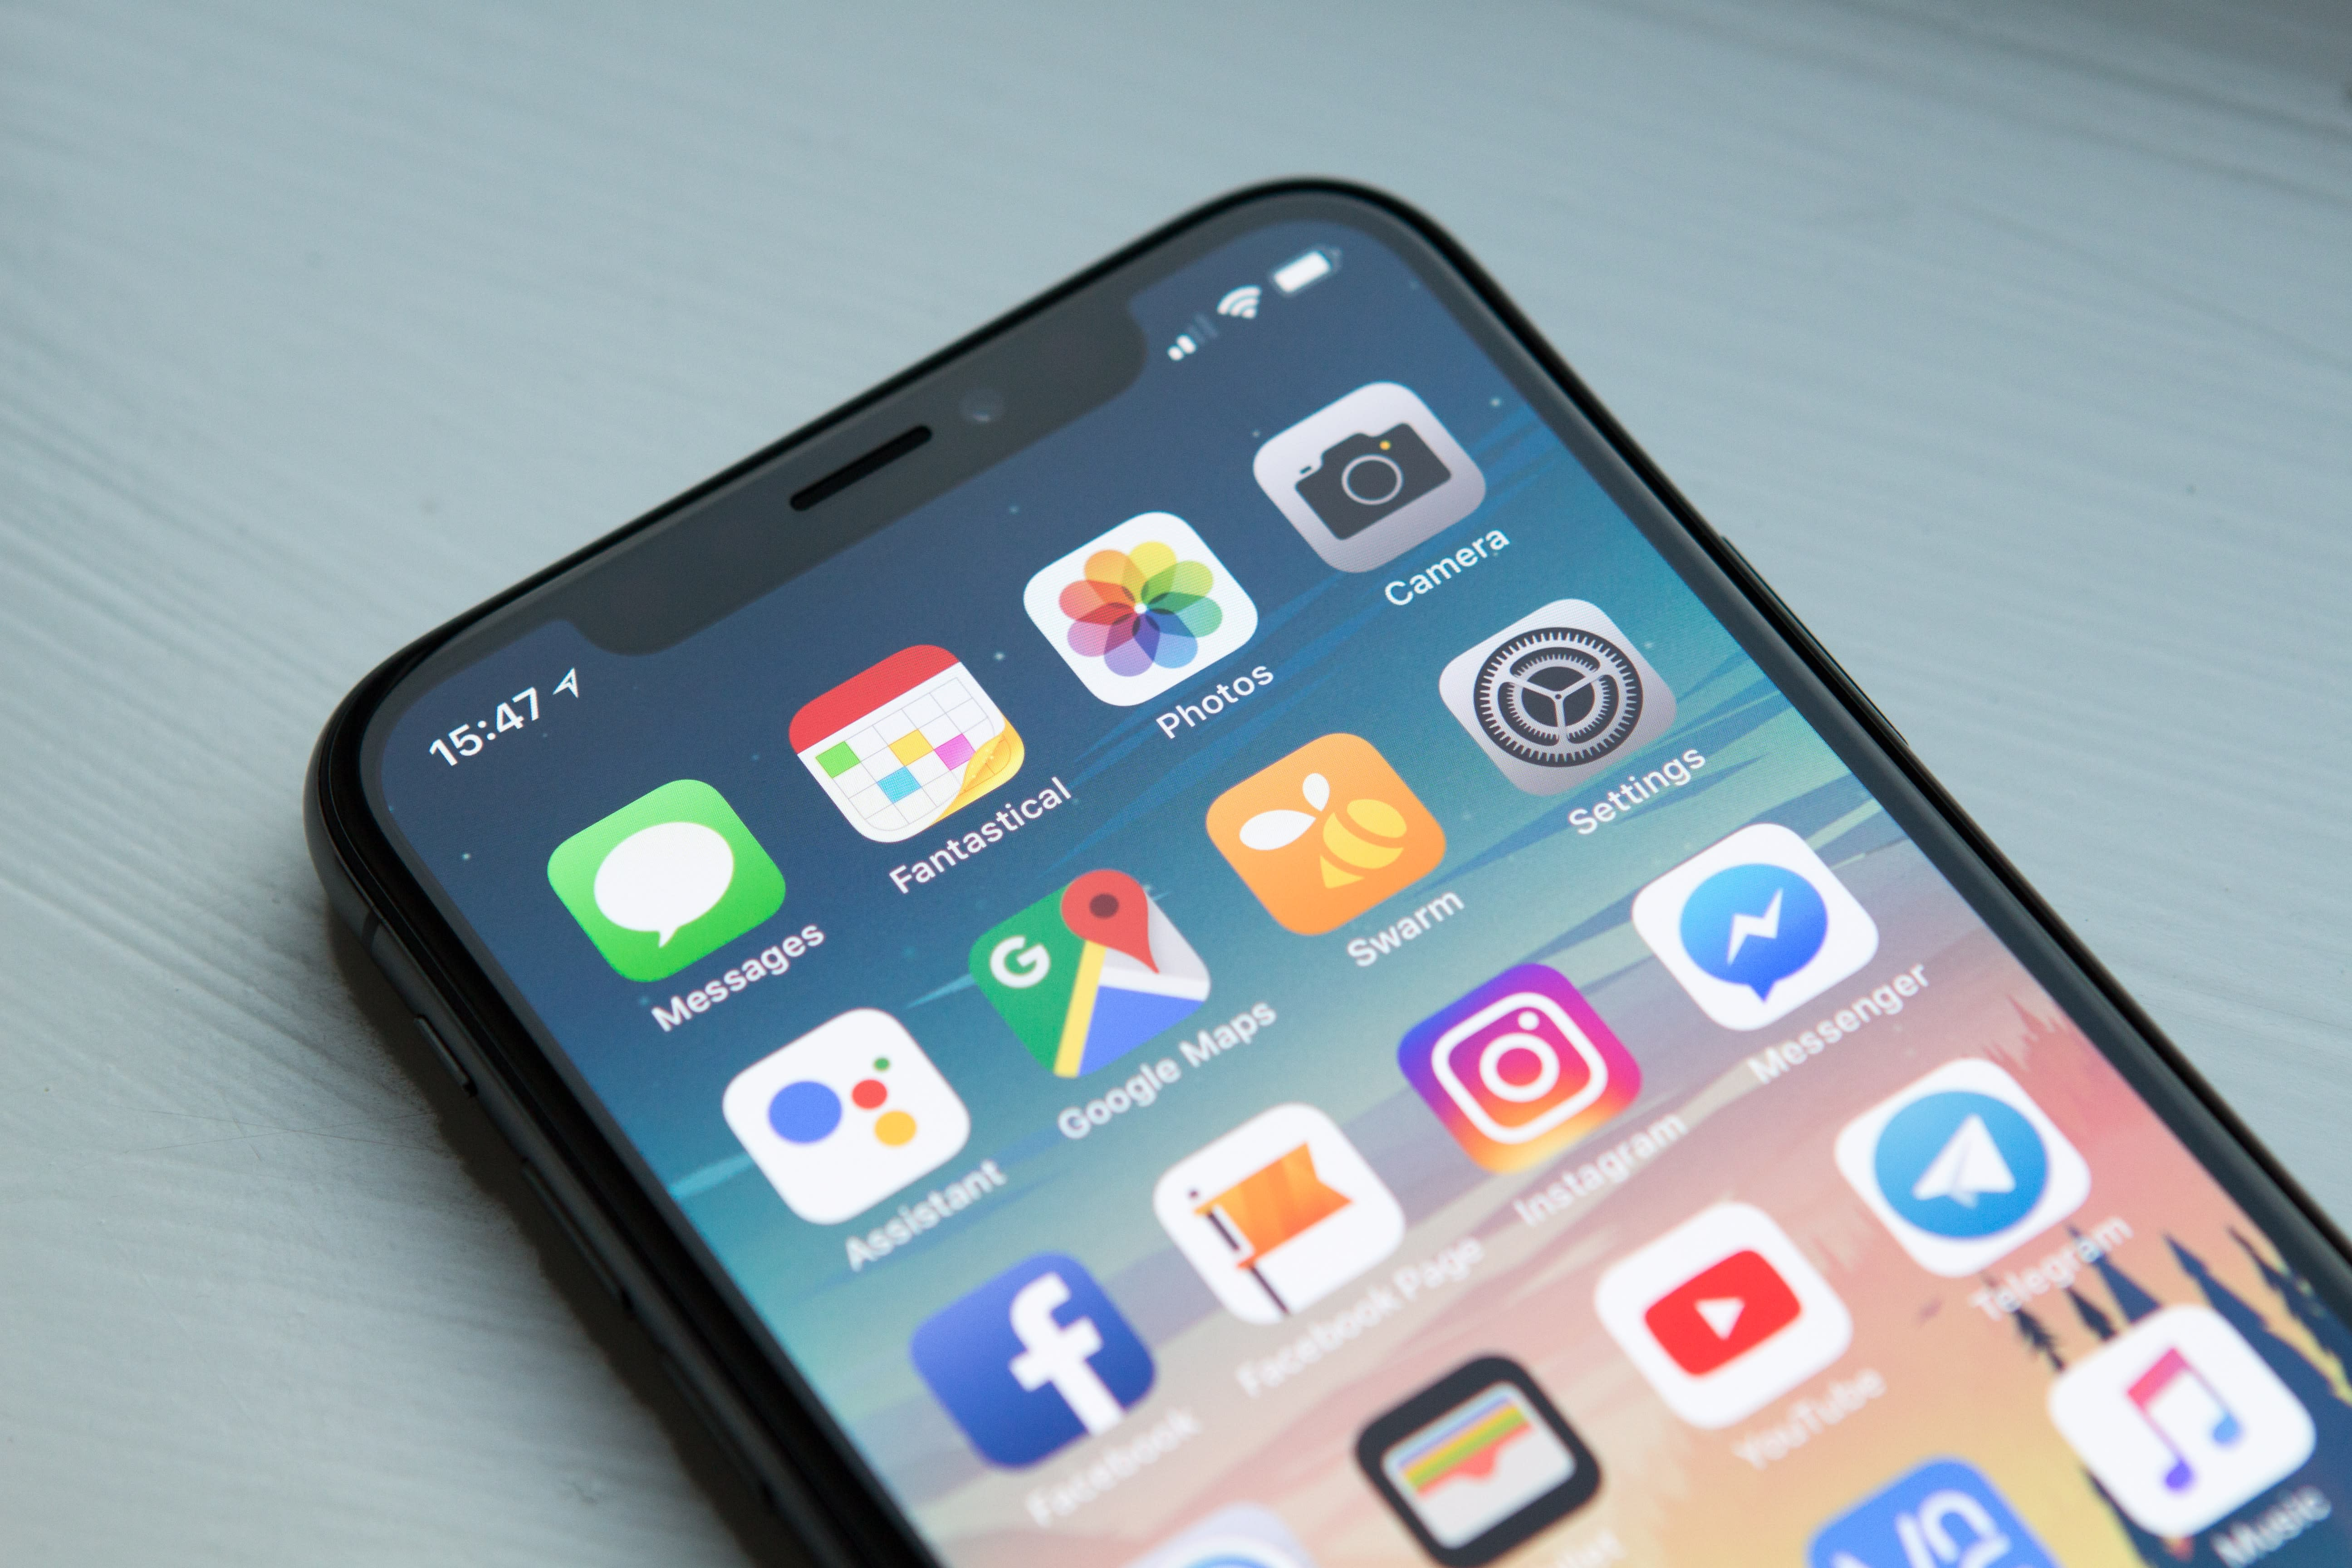 ios-14-privacy-update-ignites-discussion-between-facebook-and-apple-20200828-2